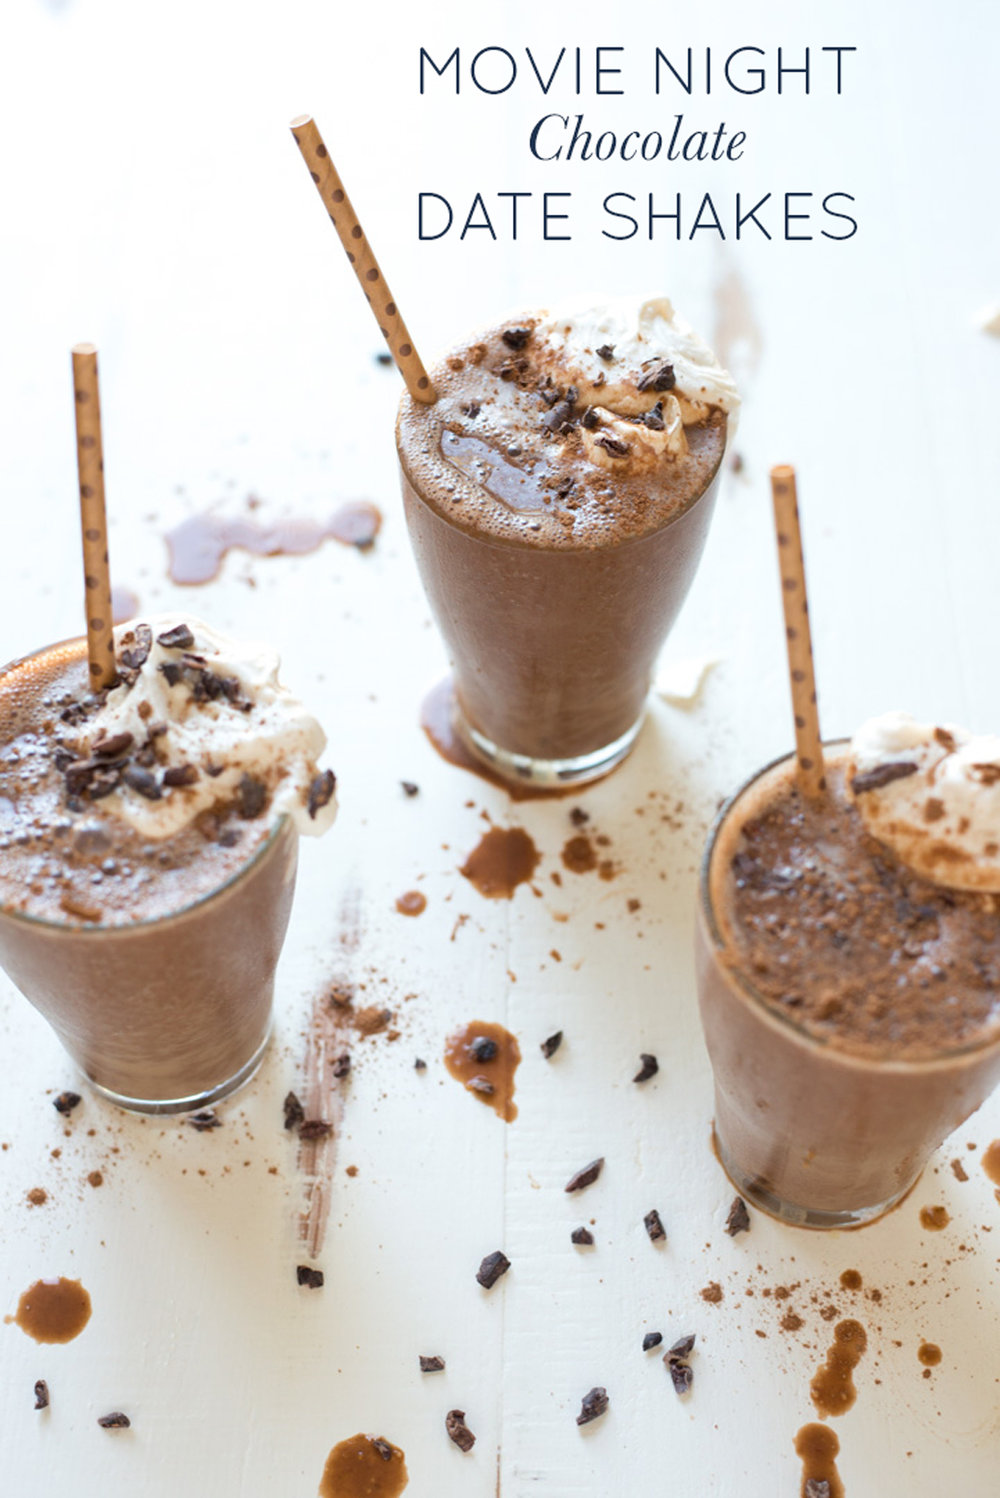 Perfect for movie night or any night, Movie Night Chocolate Date Shakes are naturally sweetened, completely dairy-free, and taste amazing!